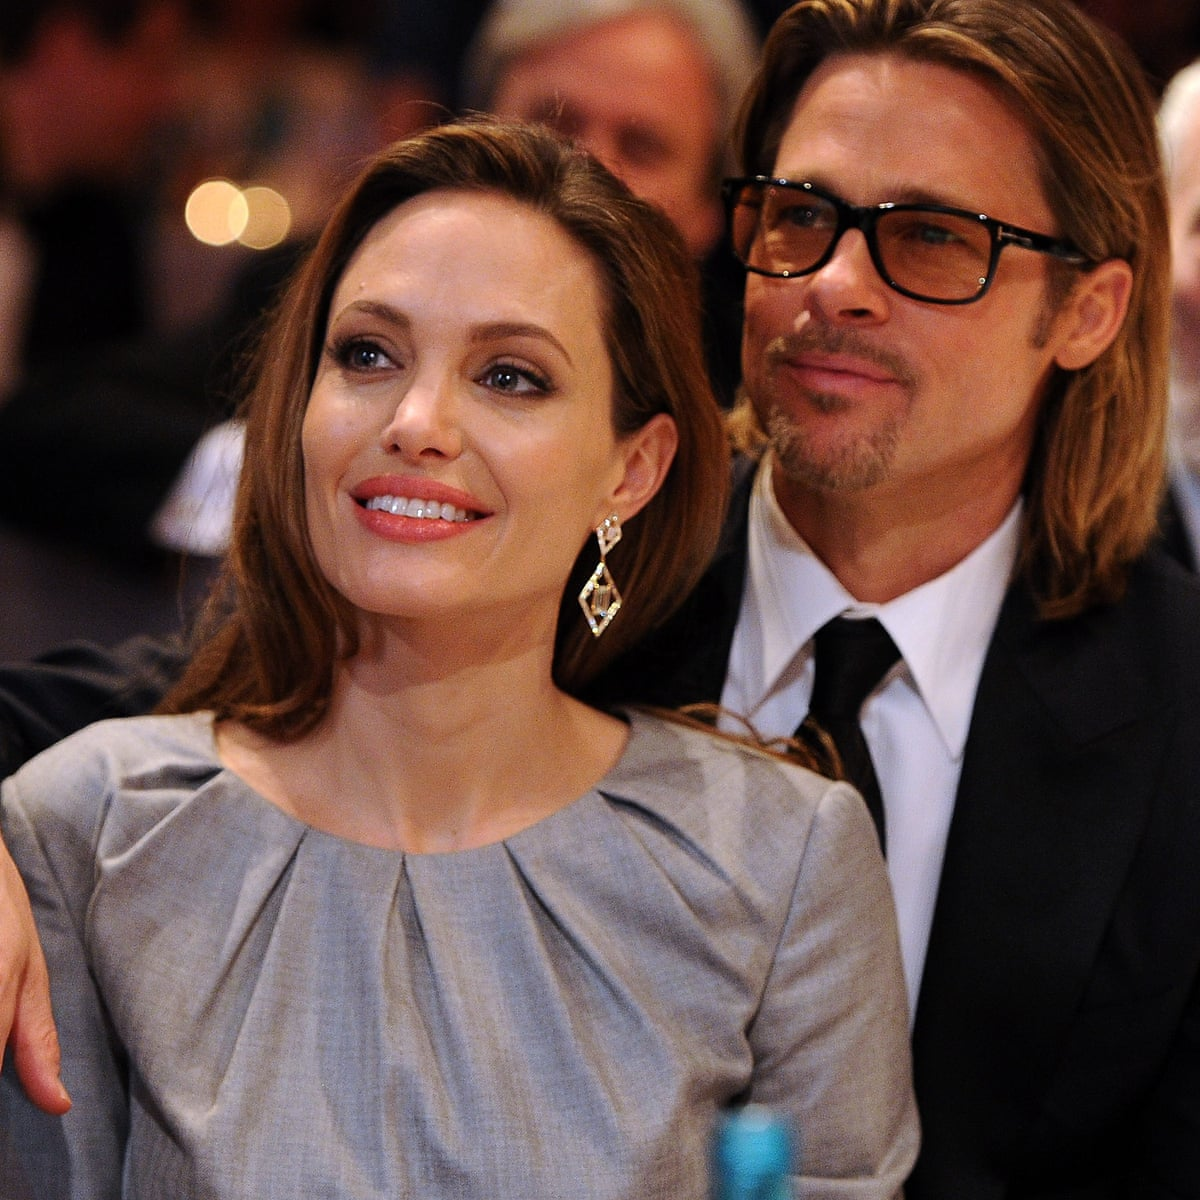 Brad Pitt, Angelina Jolie and the search for the perfect PR Hollywood  divorce | Angelina Jolie | The Guardian